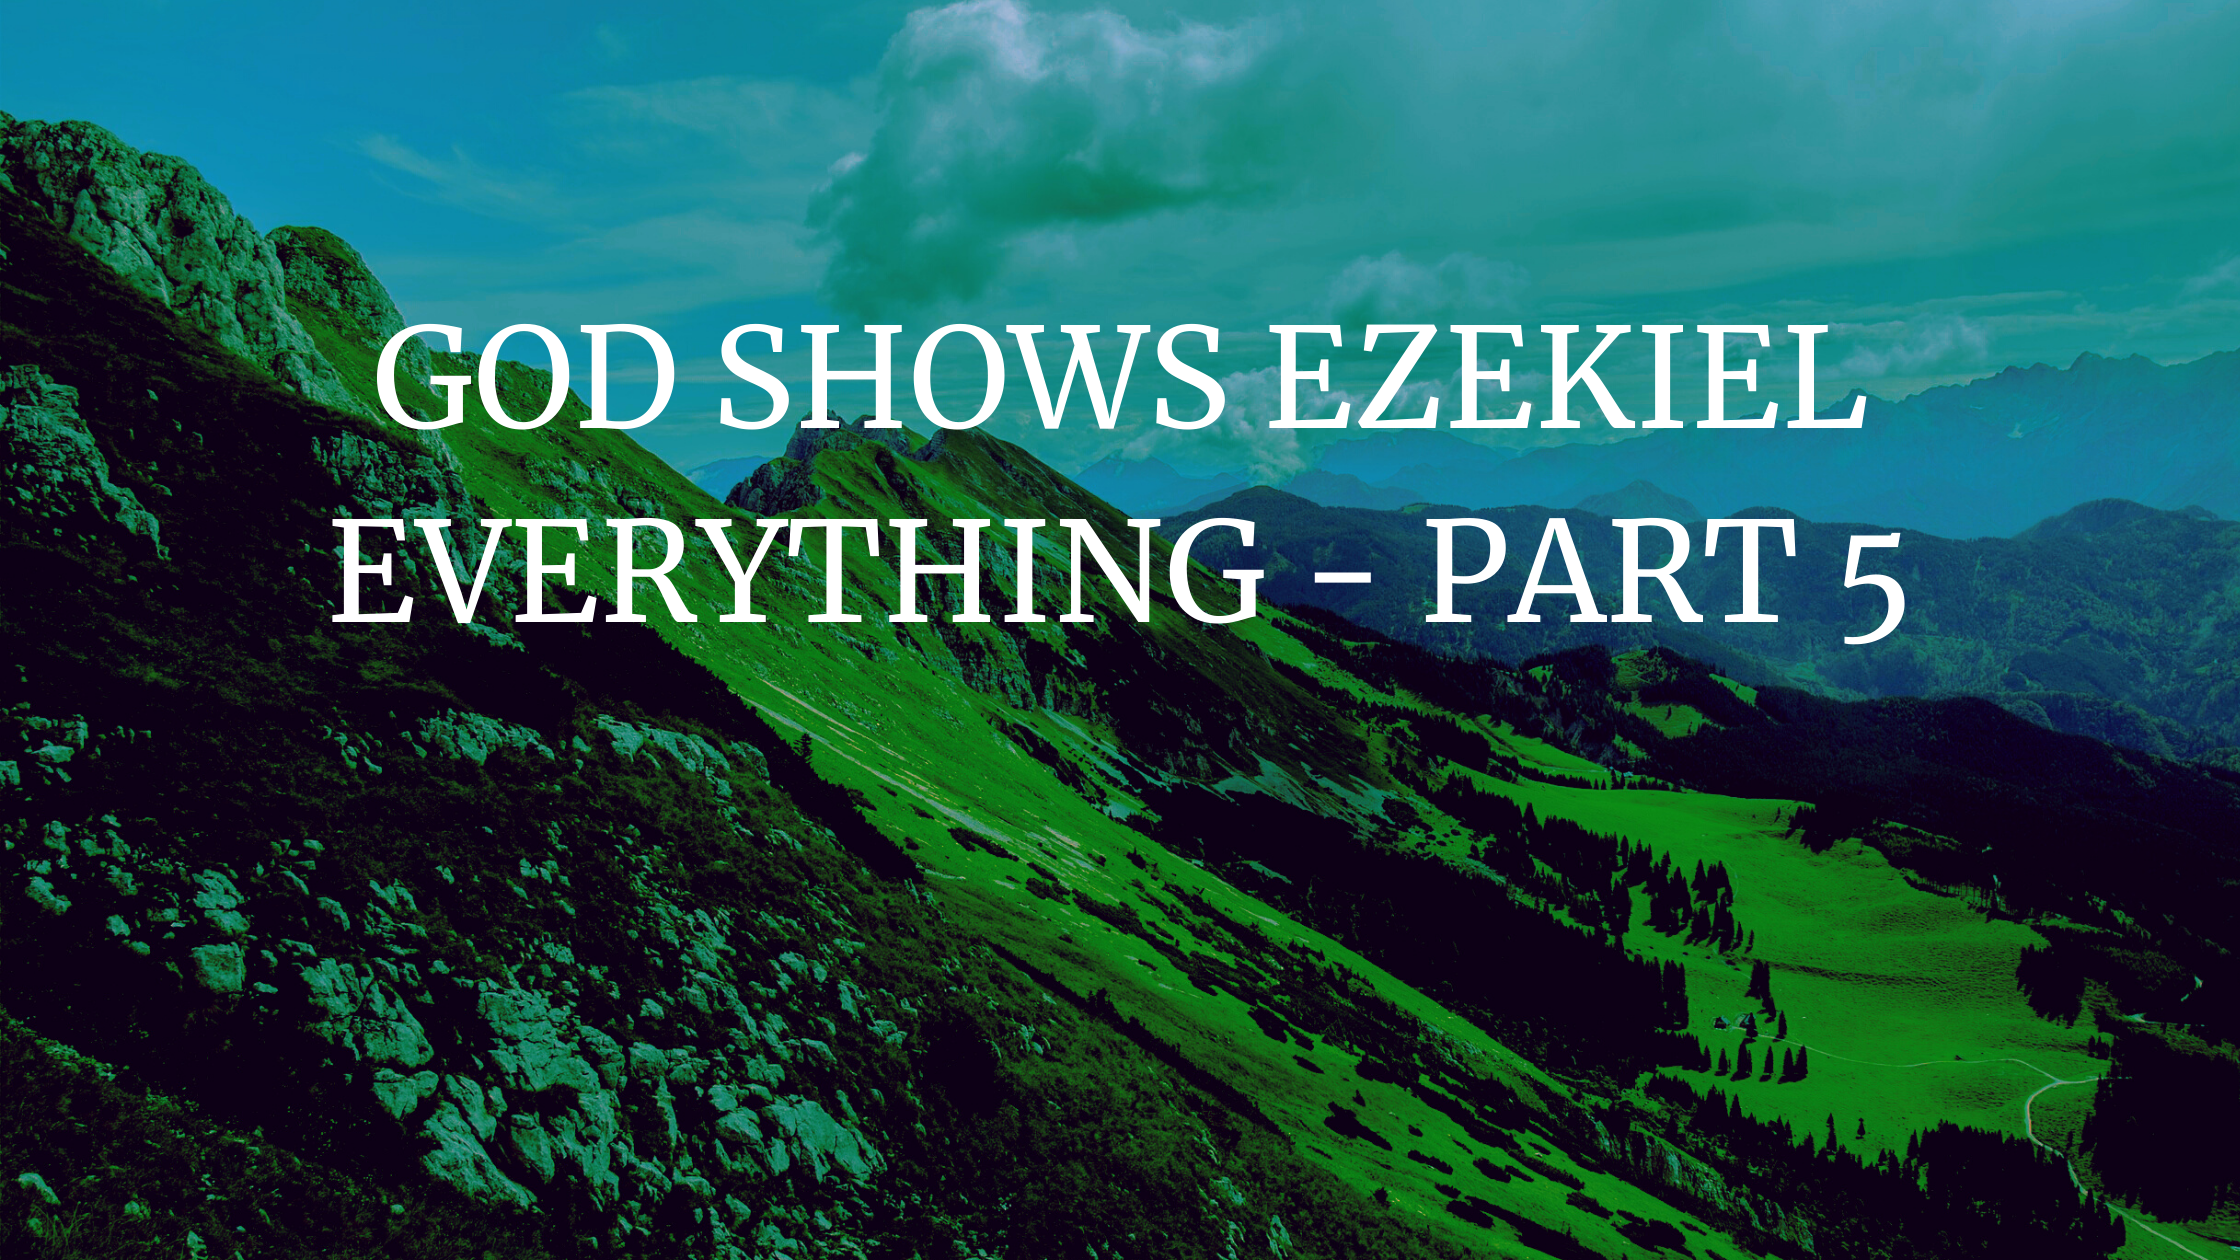 god-shows-ezekiel-everything-graphic-5